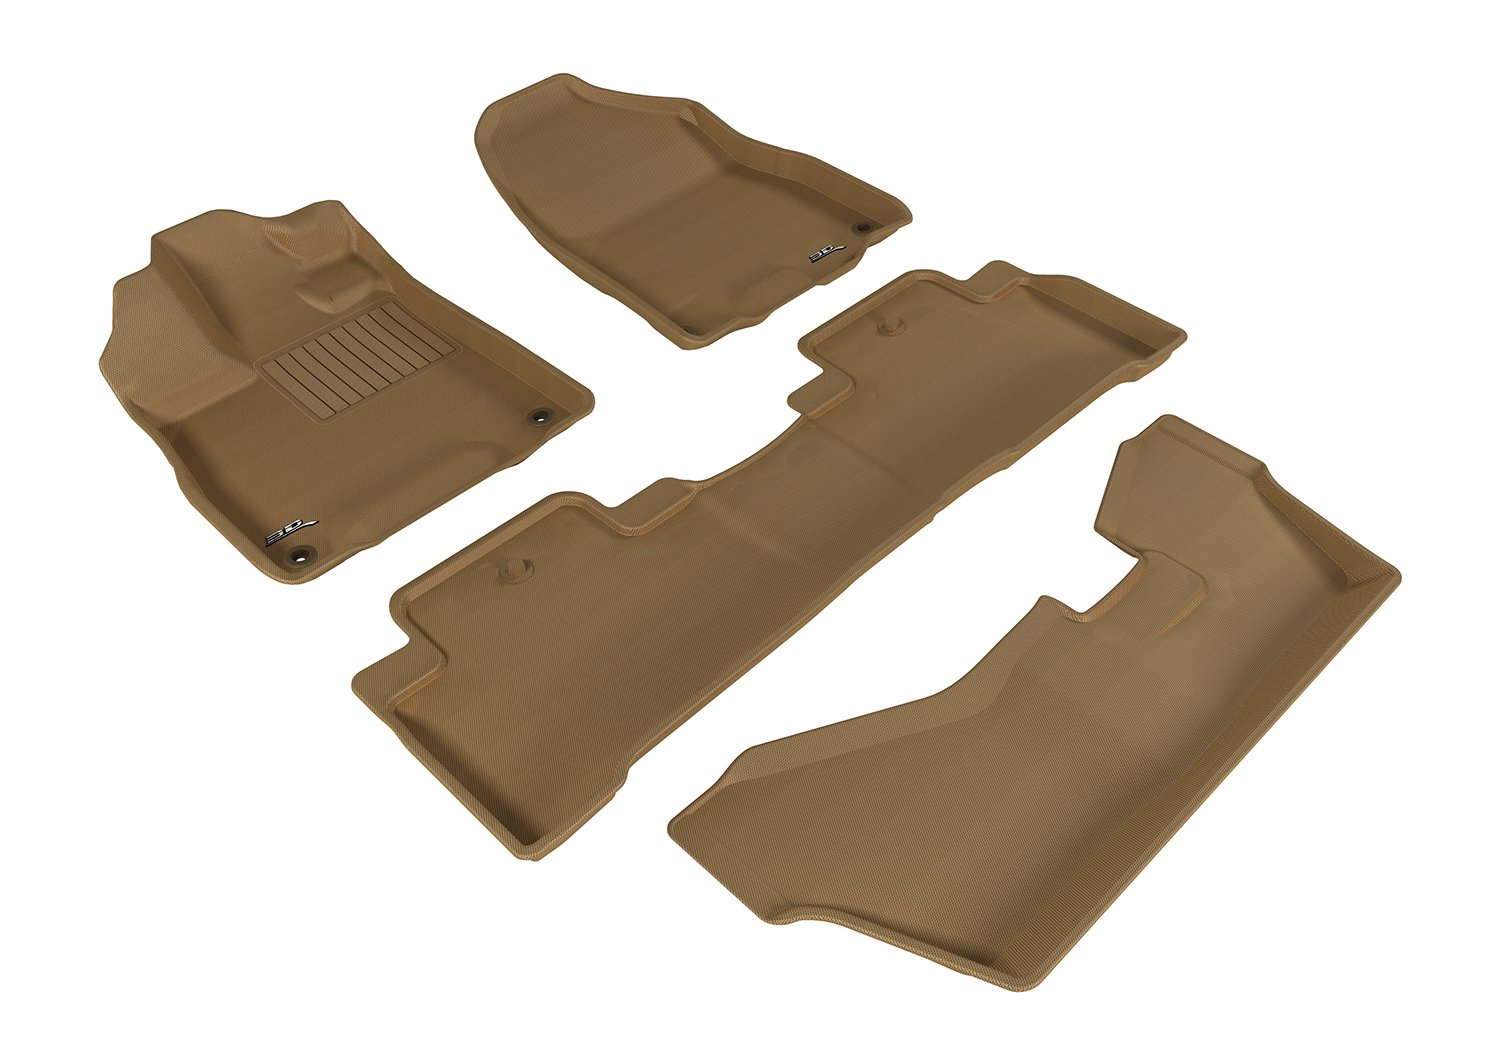 Kagu Rubber Tan 3D MAXpider Second Row Custom Fit All-Weather Floor Mat for Select Acura MDX Models